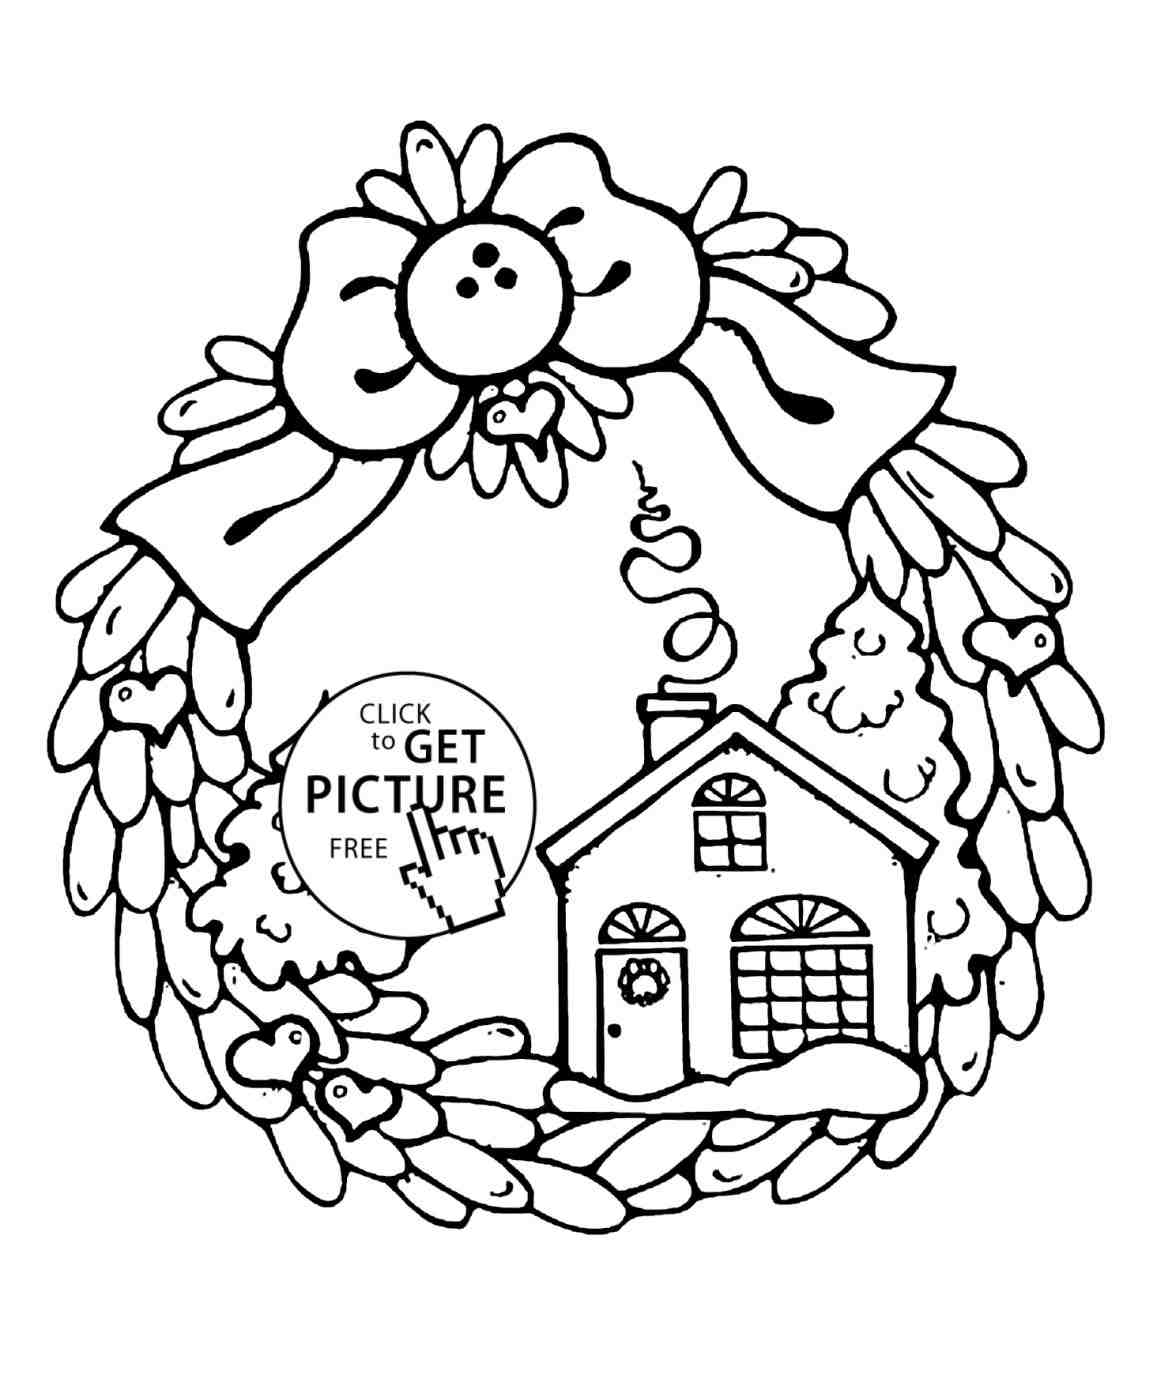 1172x1375 Christmas Drawings For Kids Tree Coloring Pages Womanmatecom